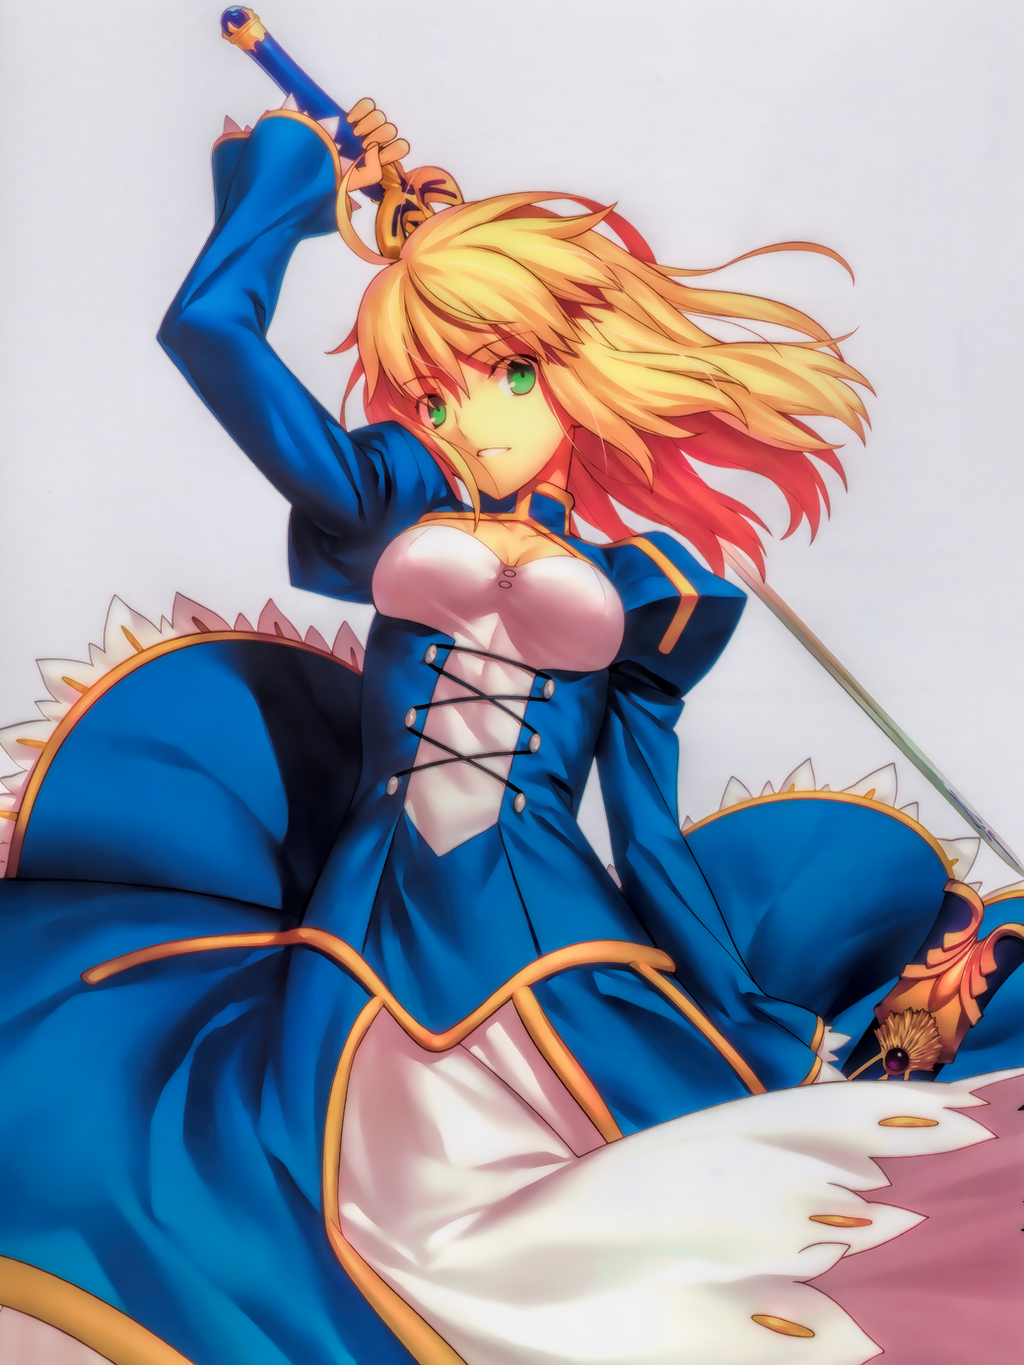 Fate/Zero: Saber by Fulbring on DeviantArt